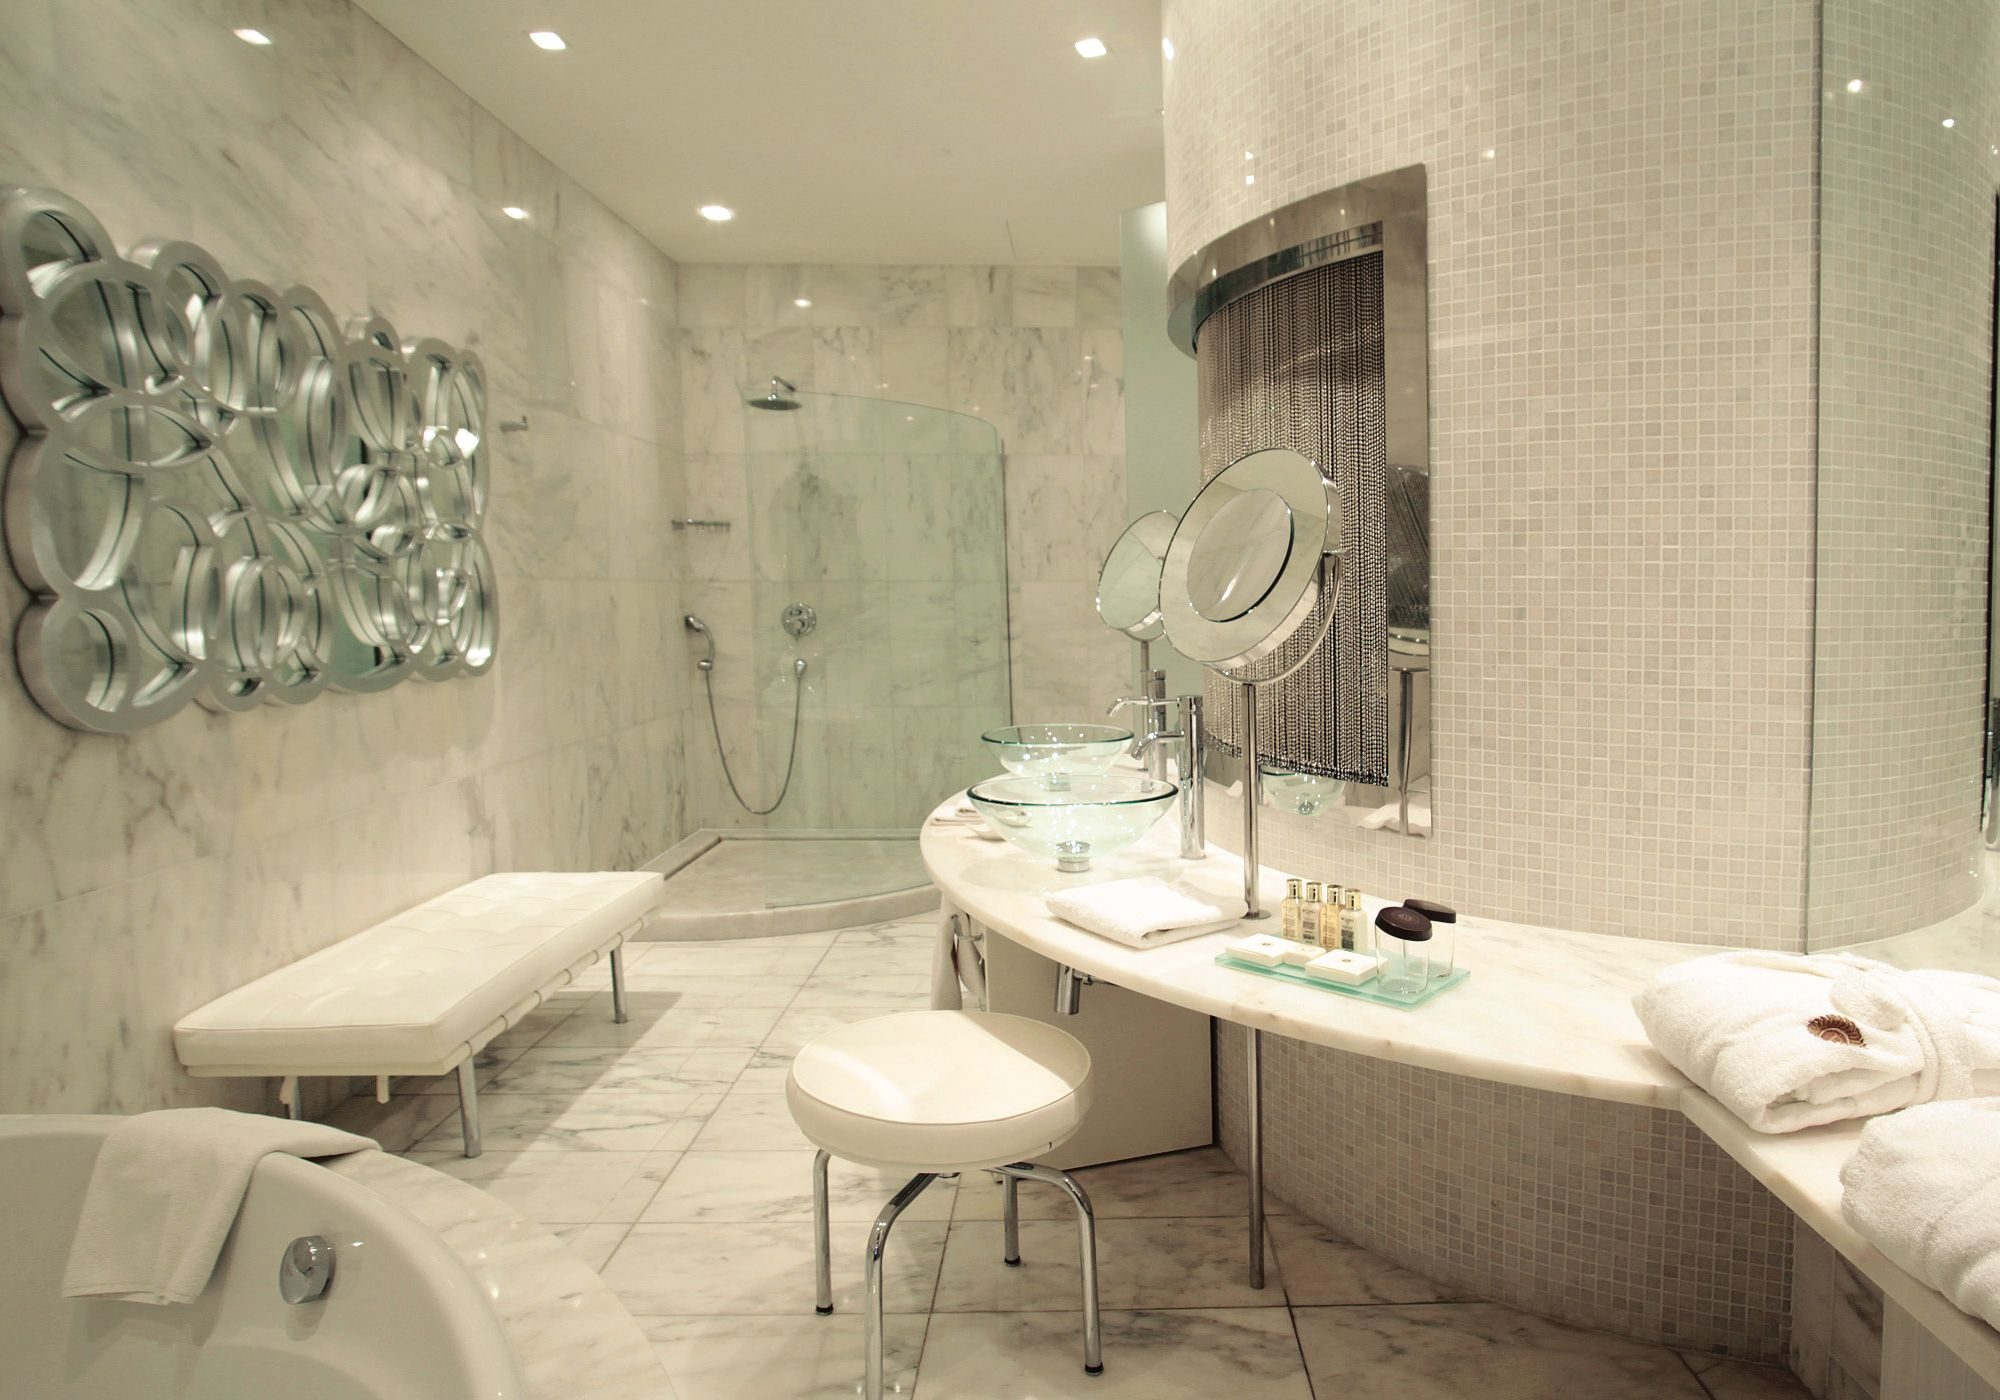 Luxury Bathroom Style With Long Vanity Plus Glass Sink On The Top Including  Glass Shower Corner And Mirror Decor On The Wall Plus Lighting Ceiling  Luxury ...